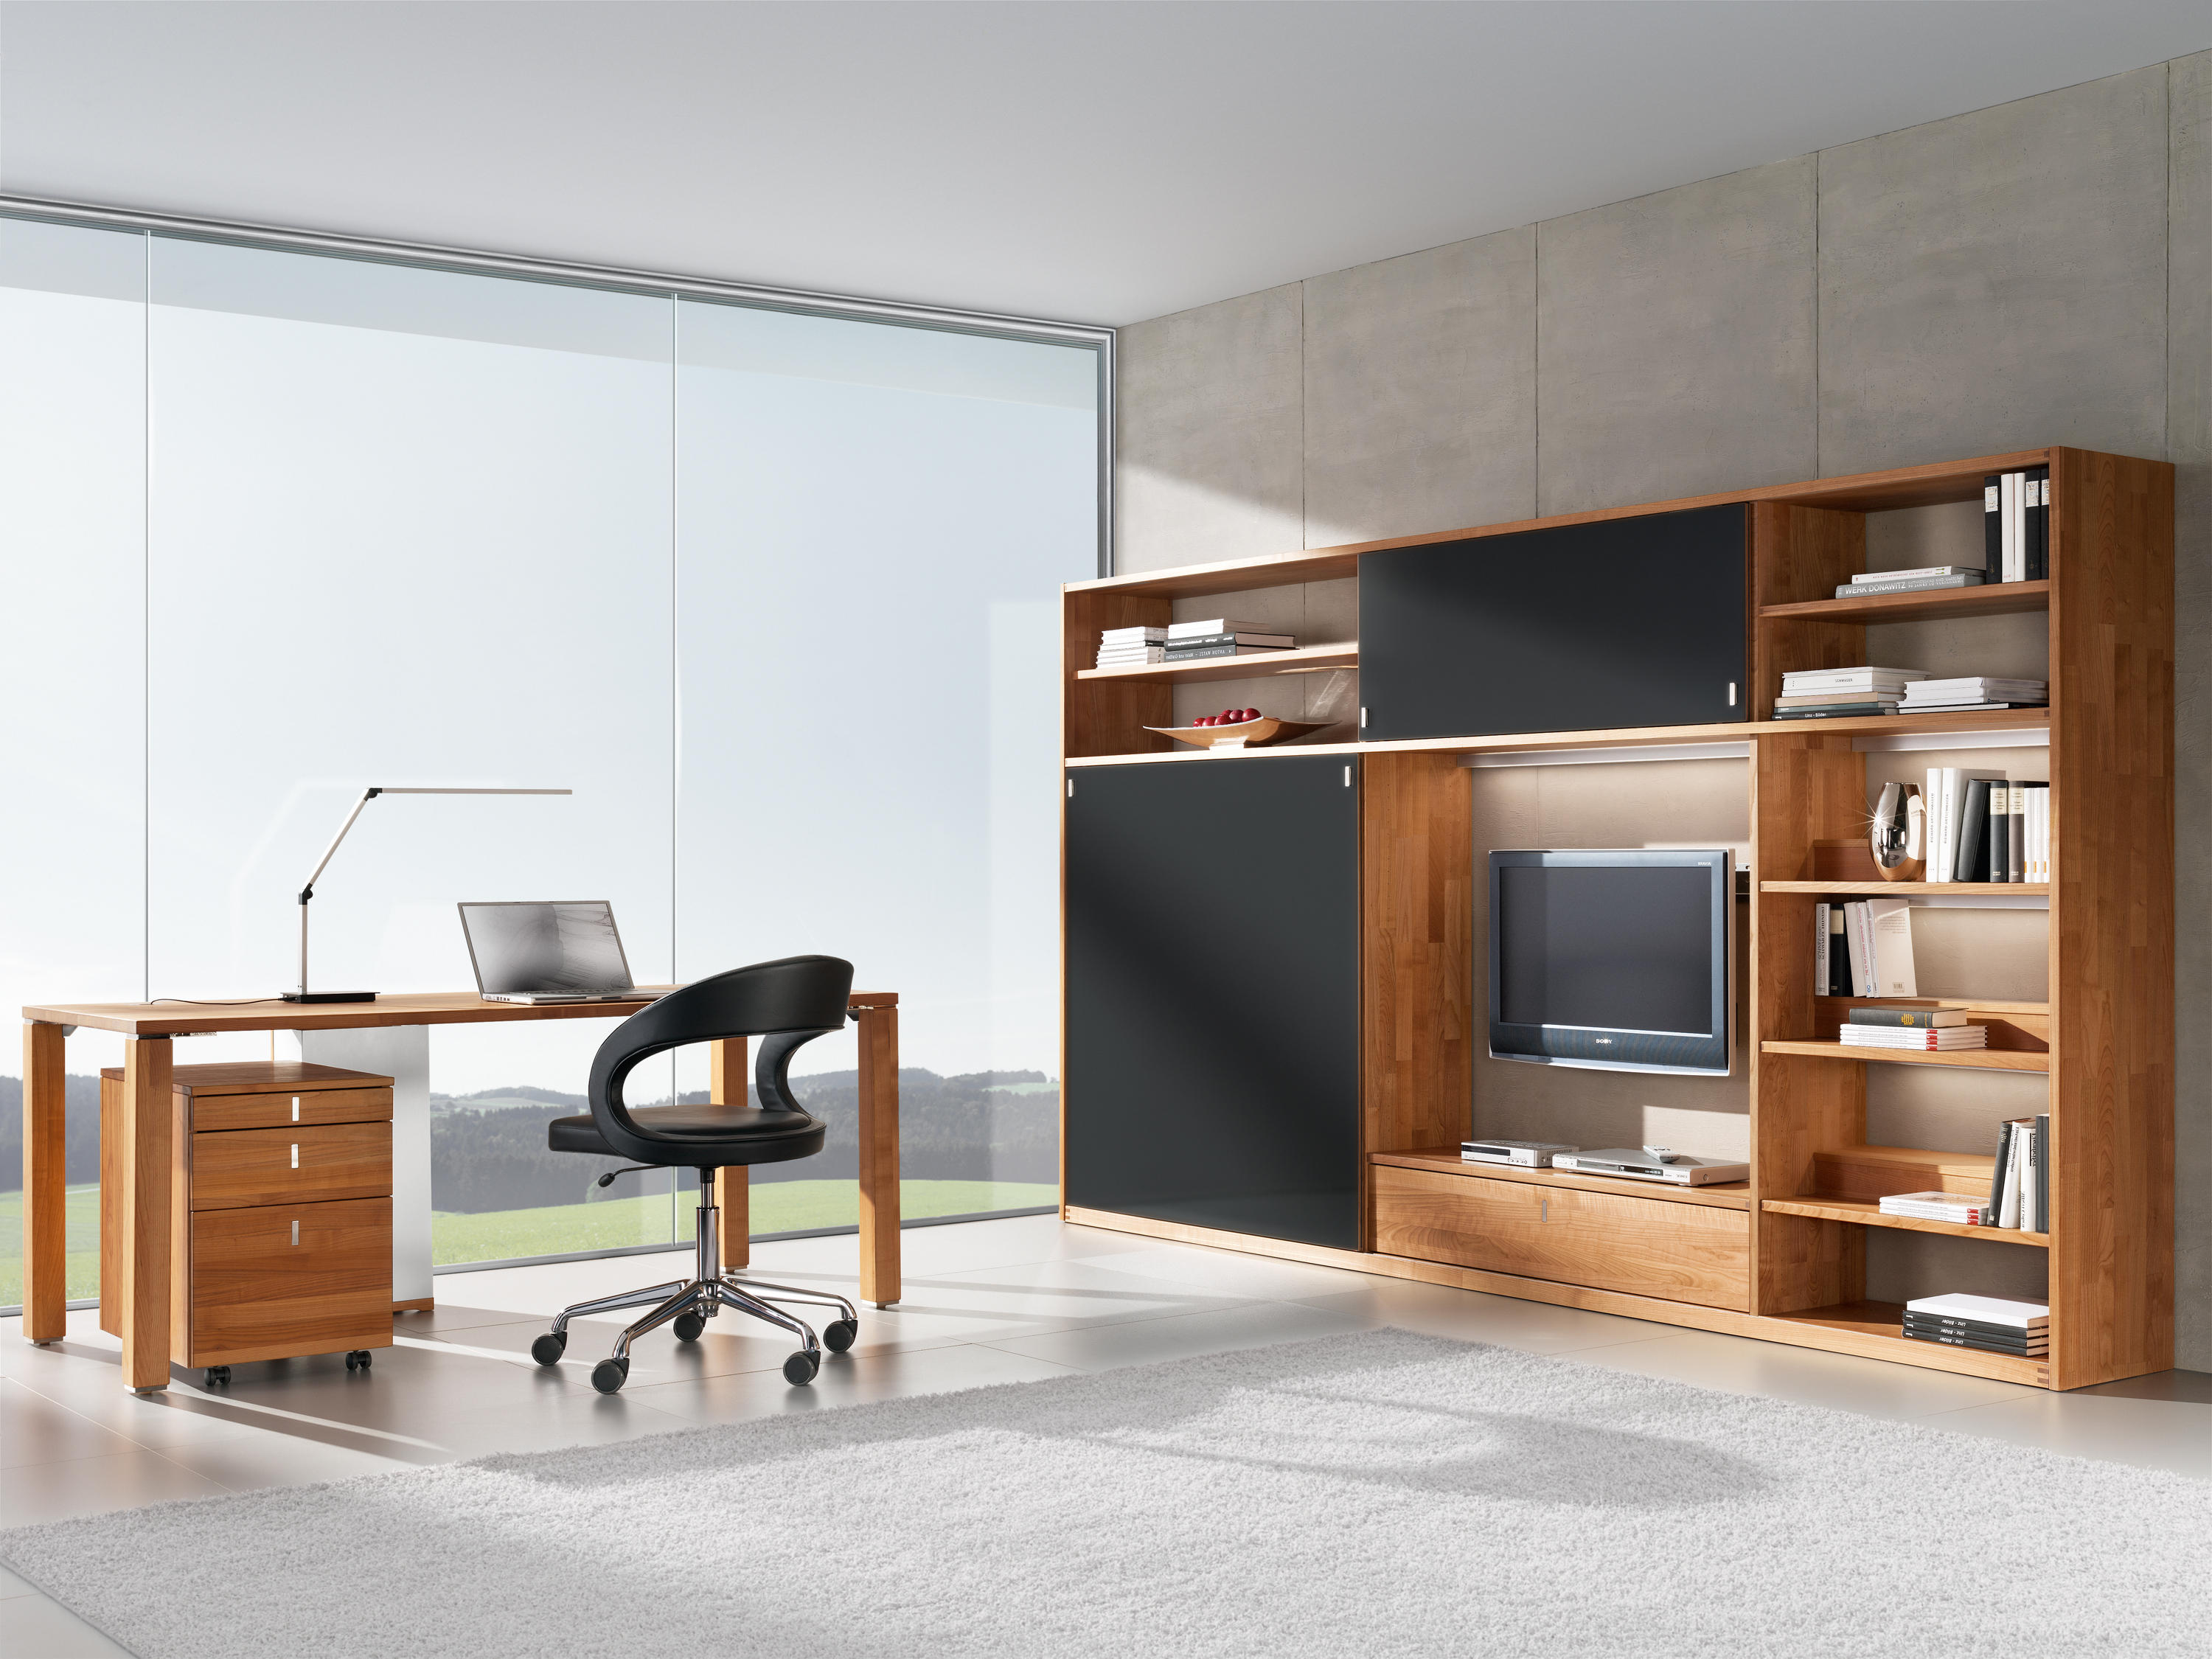 girado stuhl mit fu kreuz besucherst hle von team 7. Black Bedroom Furniture Sets. Home Design Ideas